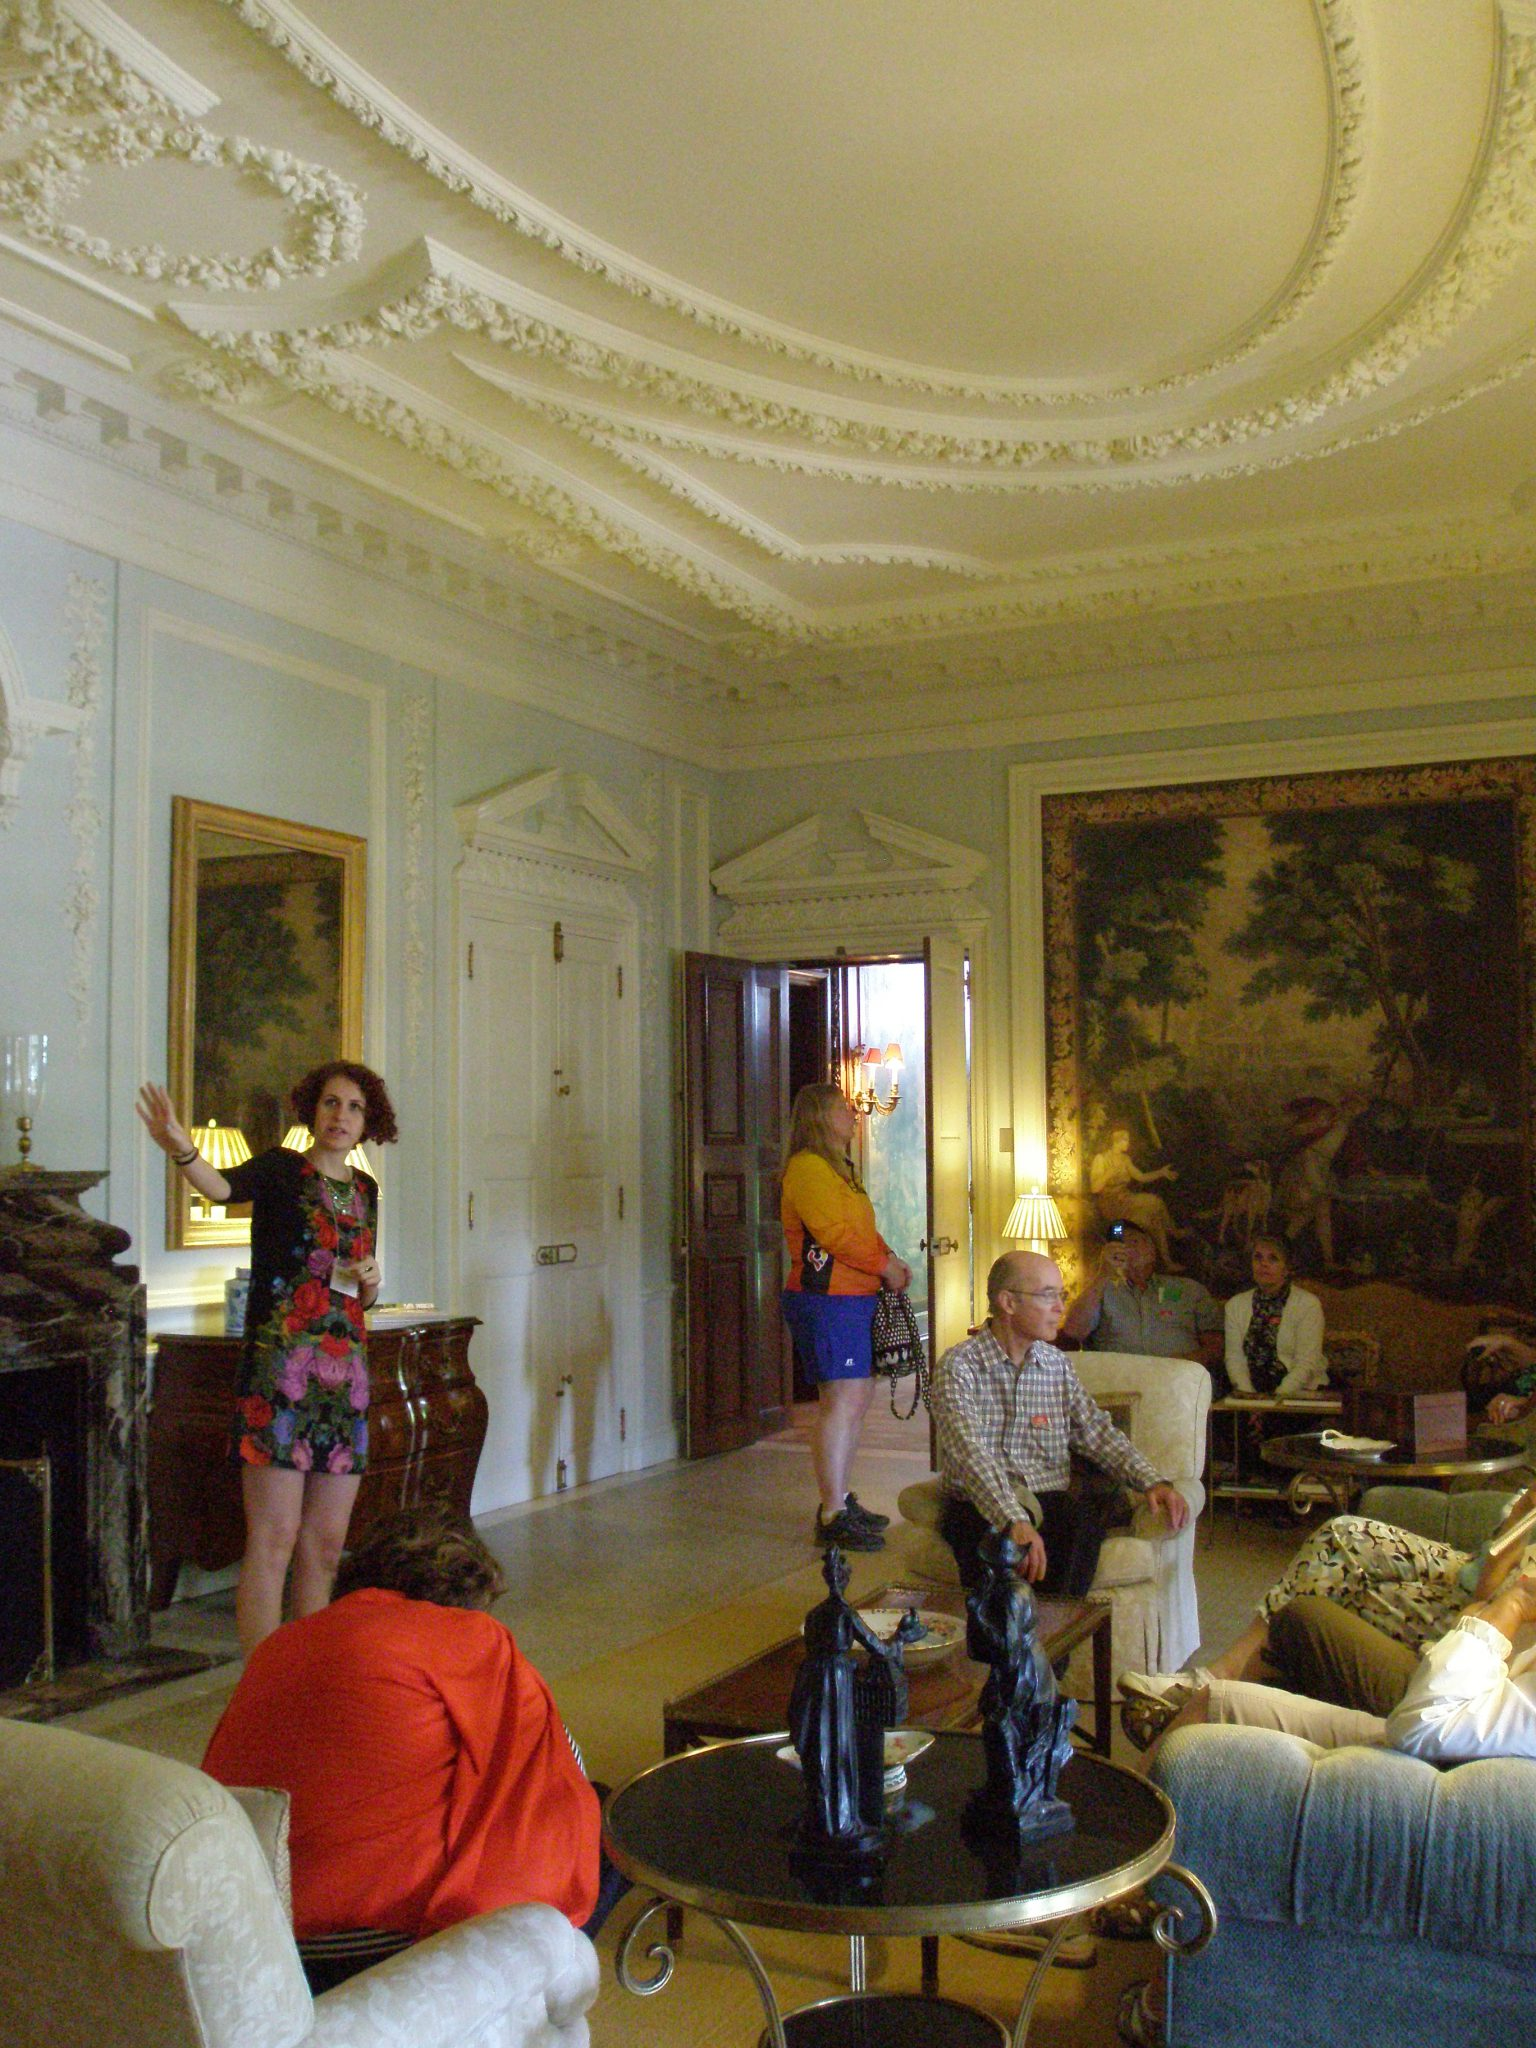 Another view of the Drawing Room, which has the most elaborate ceiling treatment of all of the house's rooms. Our Guide is holding forth, in front of the fireplace. She was vivacious, charming and FULL of information about Mrs. Wharton and her home.